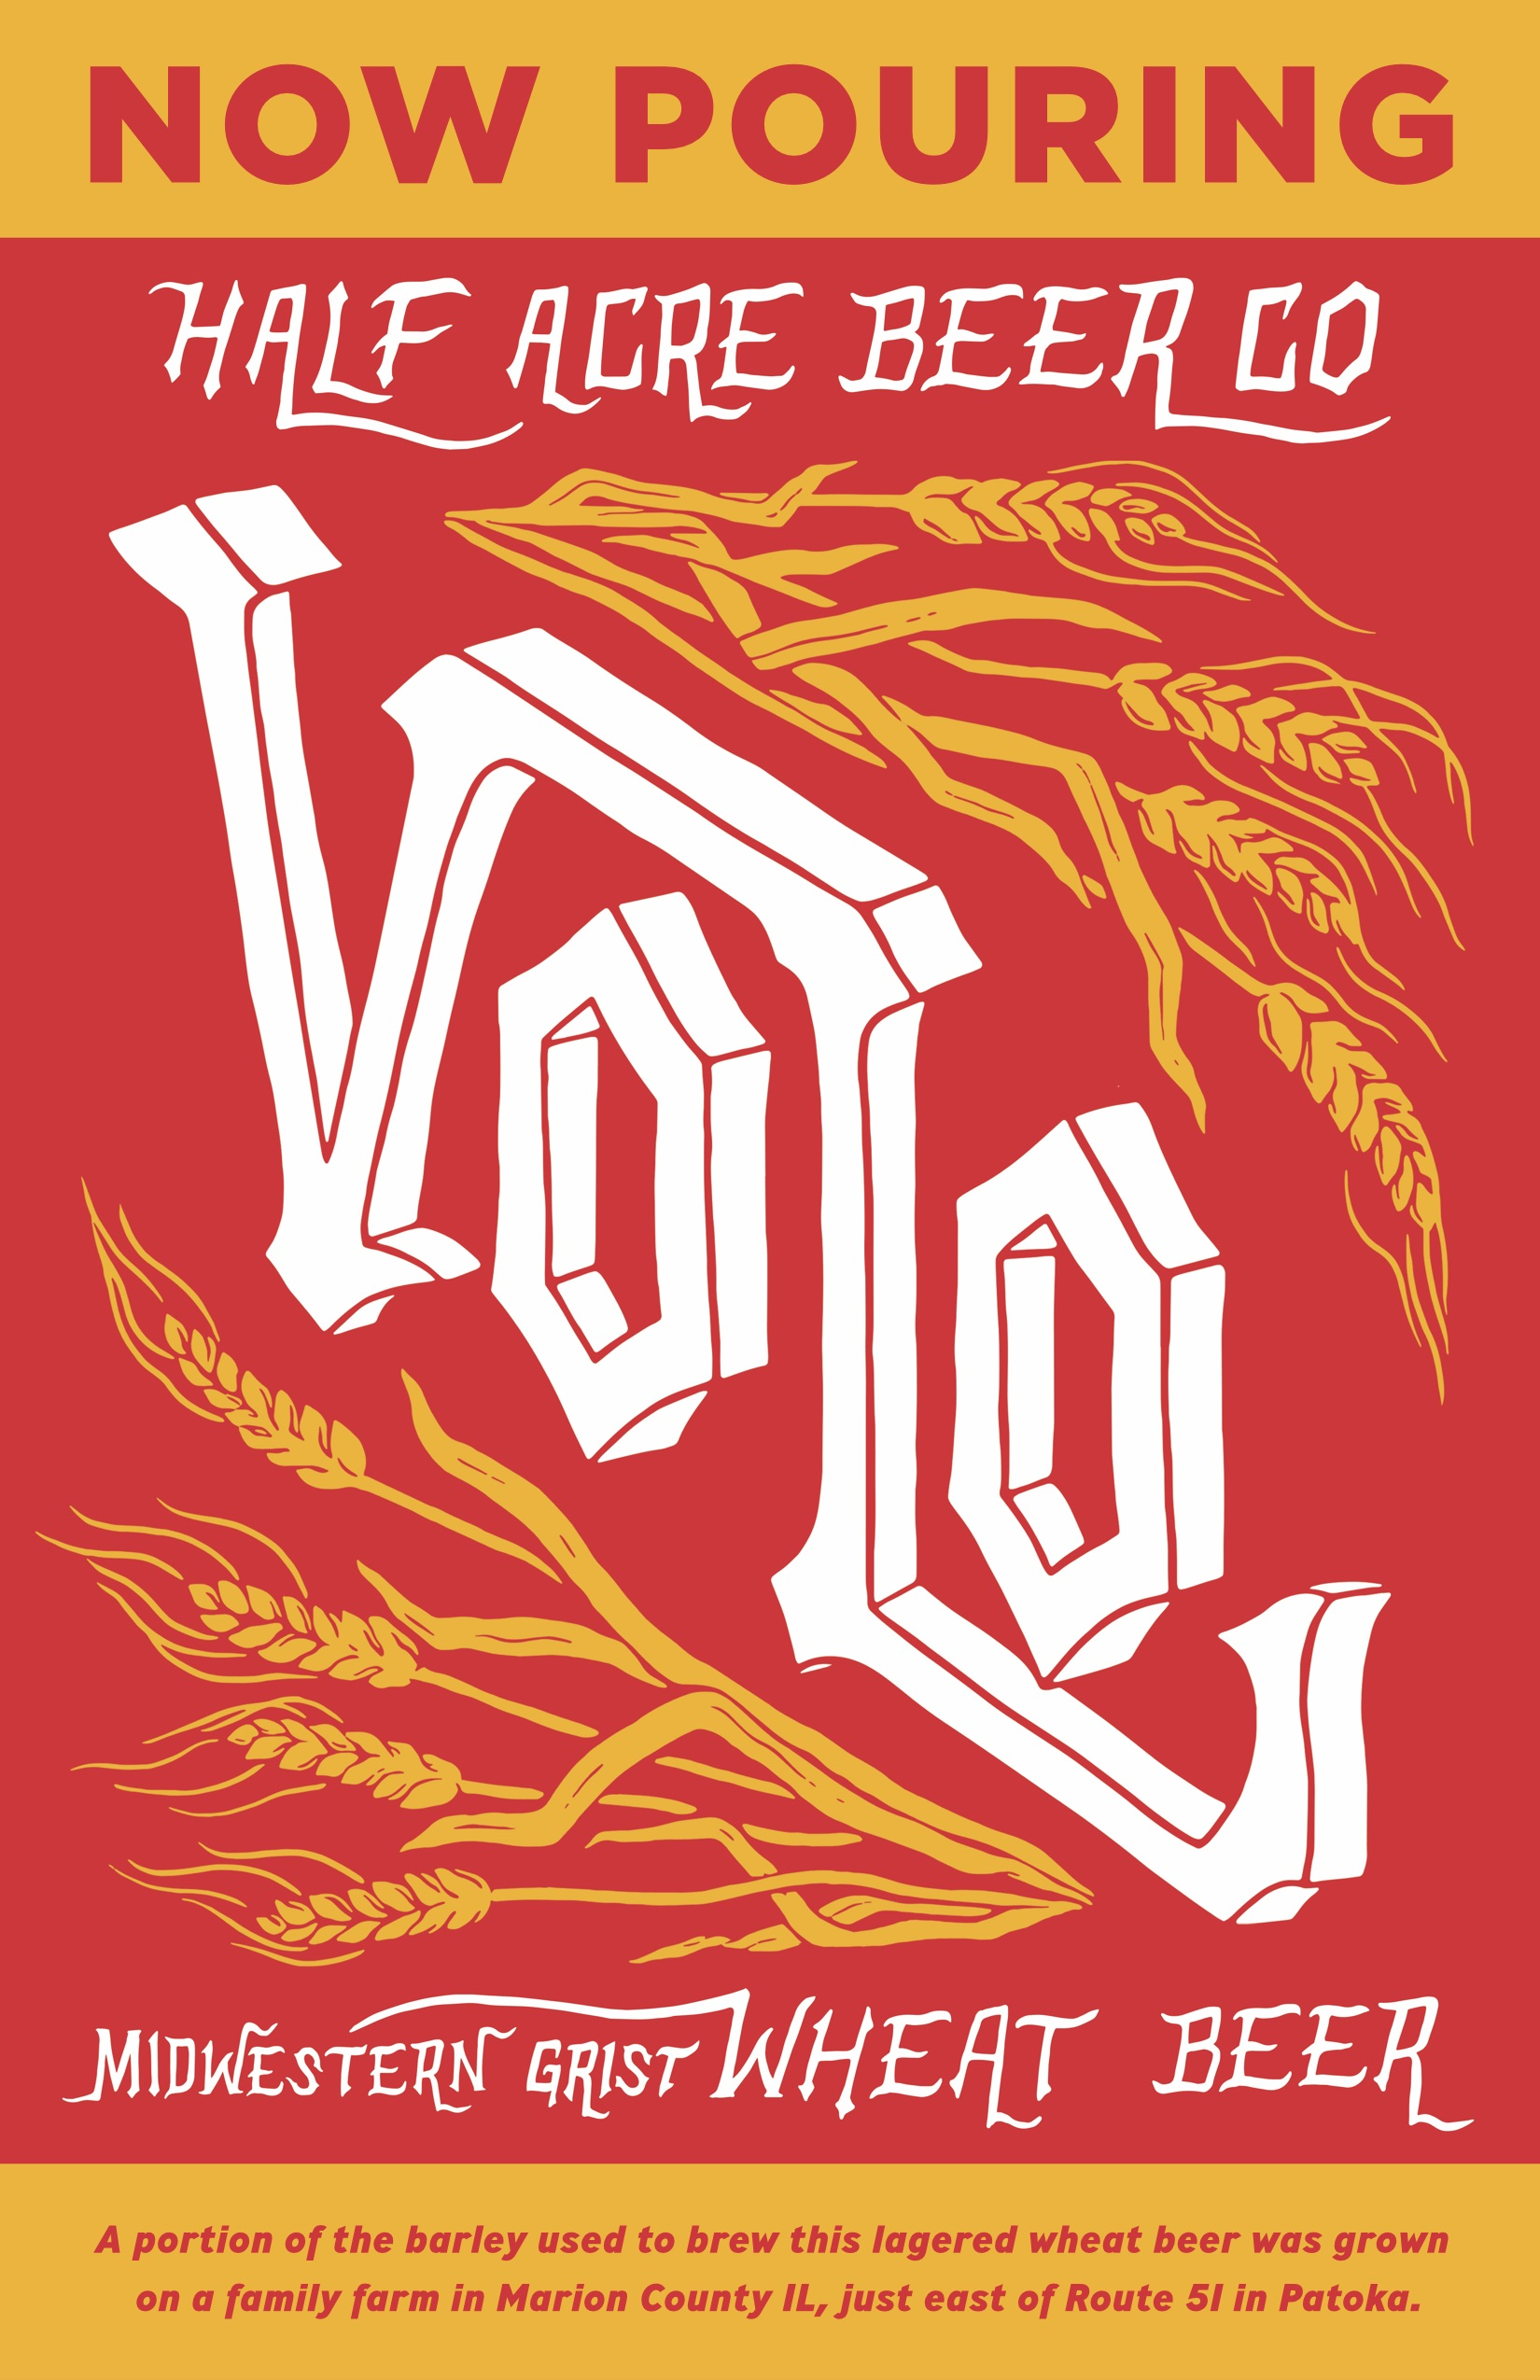 volo now pouring.jpg